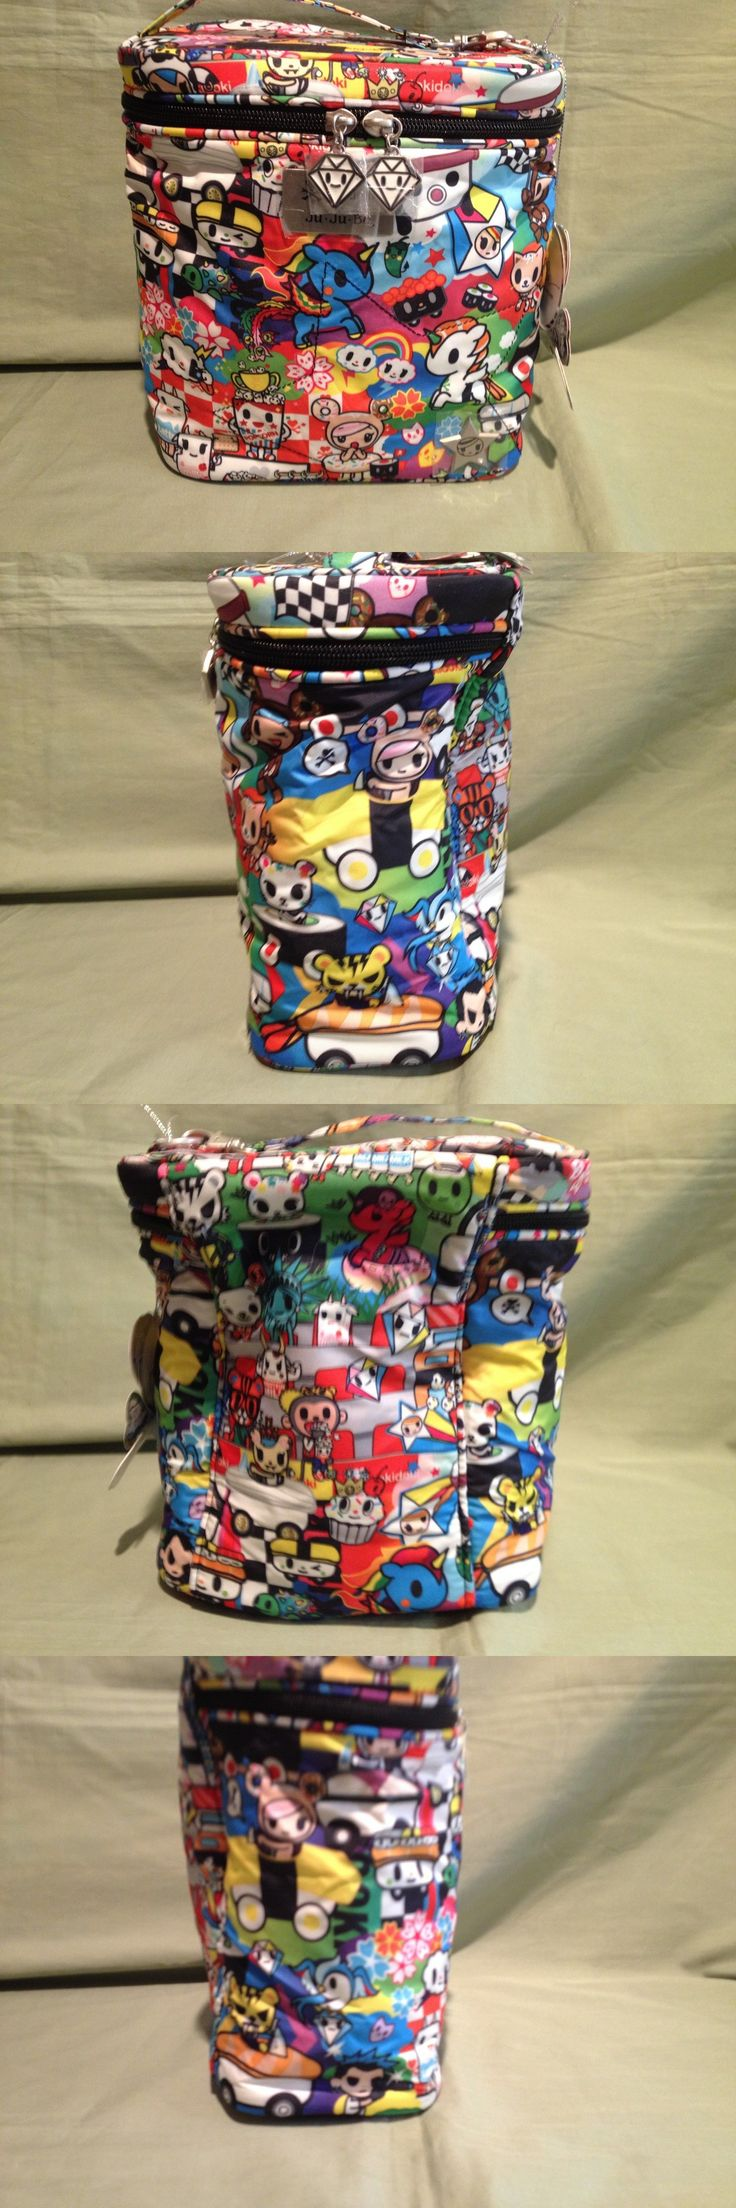 Diaper Bags 146530: Nip Ju-Ju-Be Fuel Cell Lunch Bag Tokidoki Sushi Cars Free Shipping New Print -> BUY IT NOW ONLY: $31 on eBay!